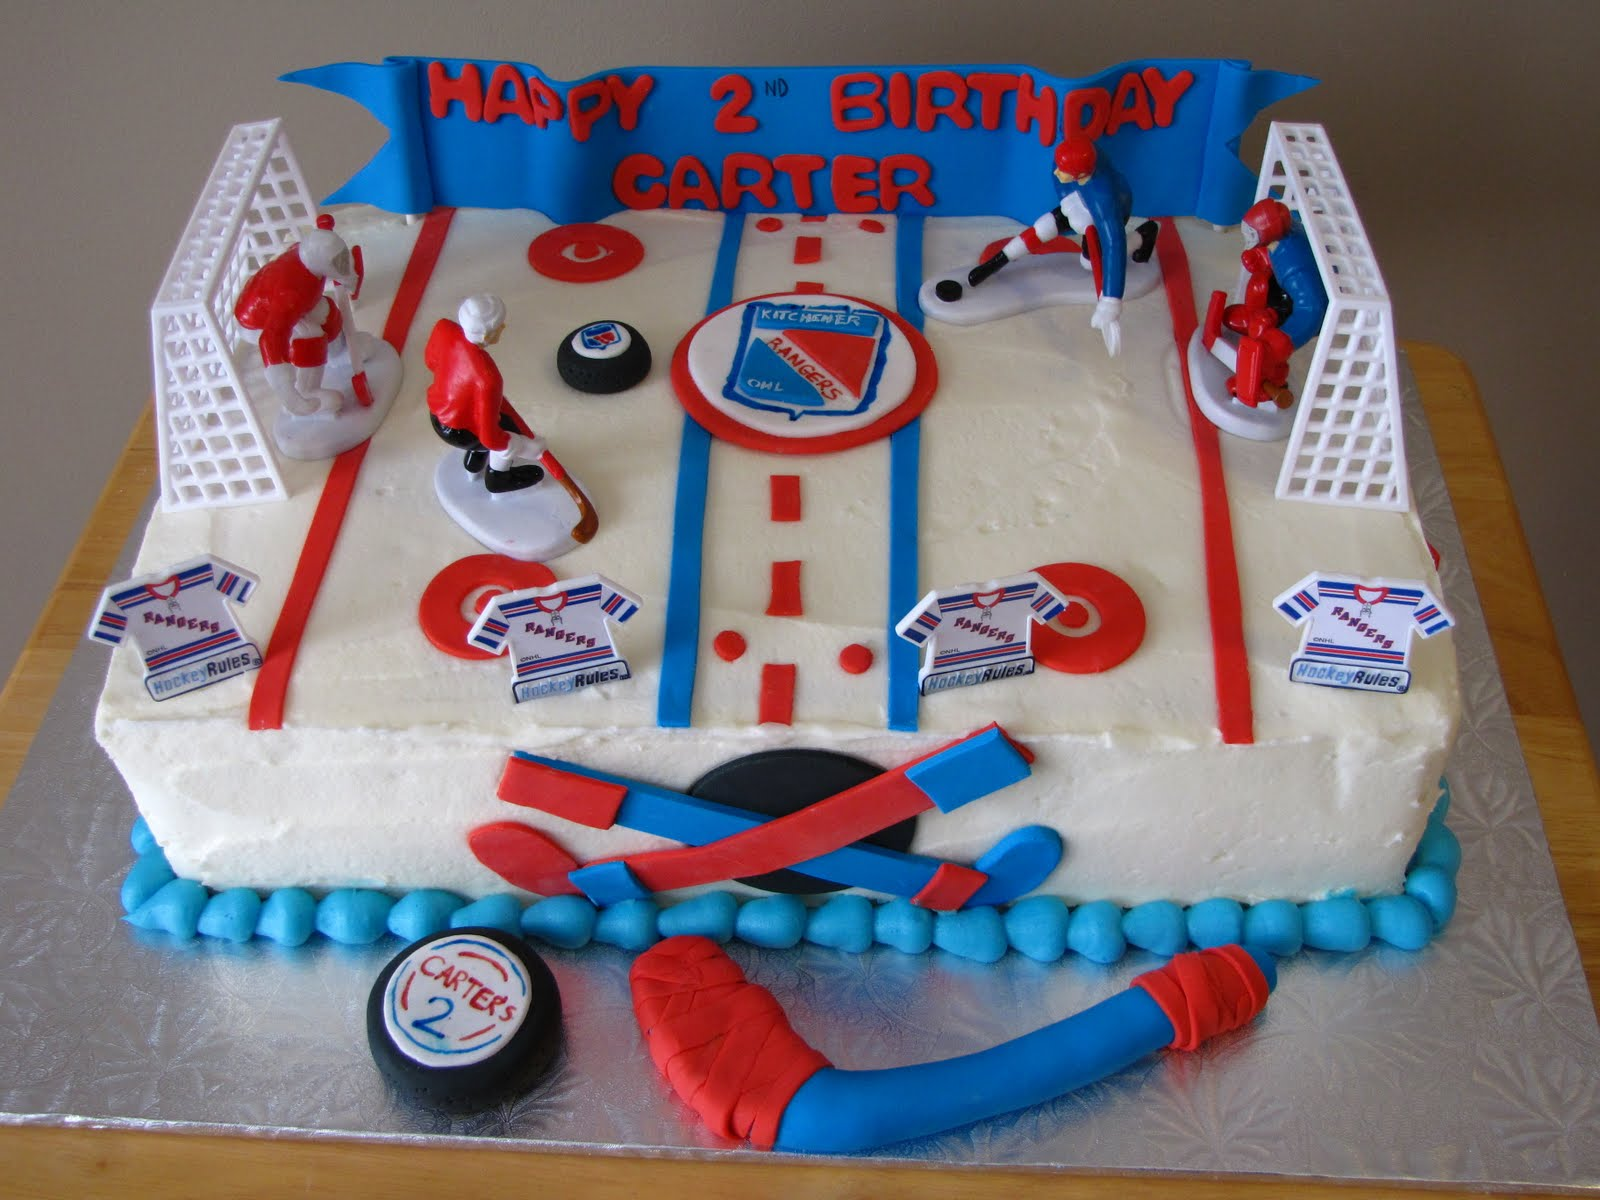 Ice Hockey Cake Decorating Kit : Cake Decorating Hockey Cake Ideas and Designs